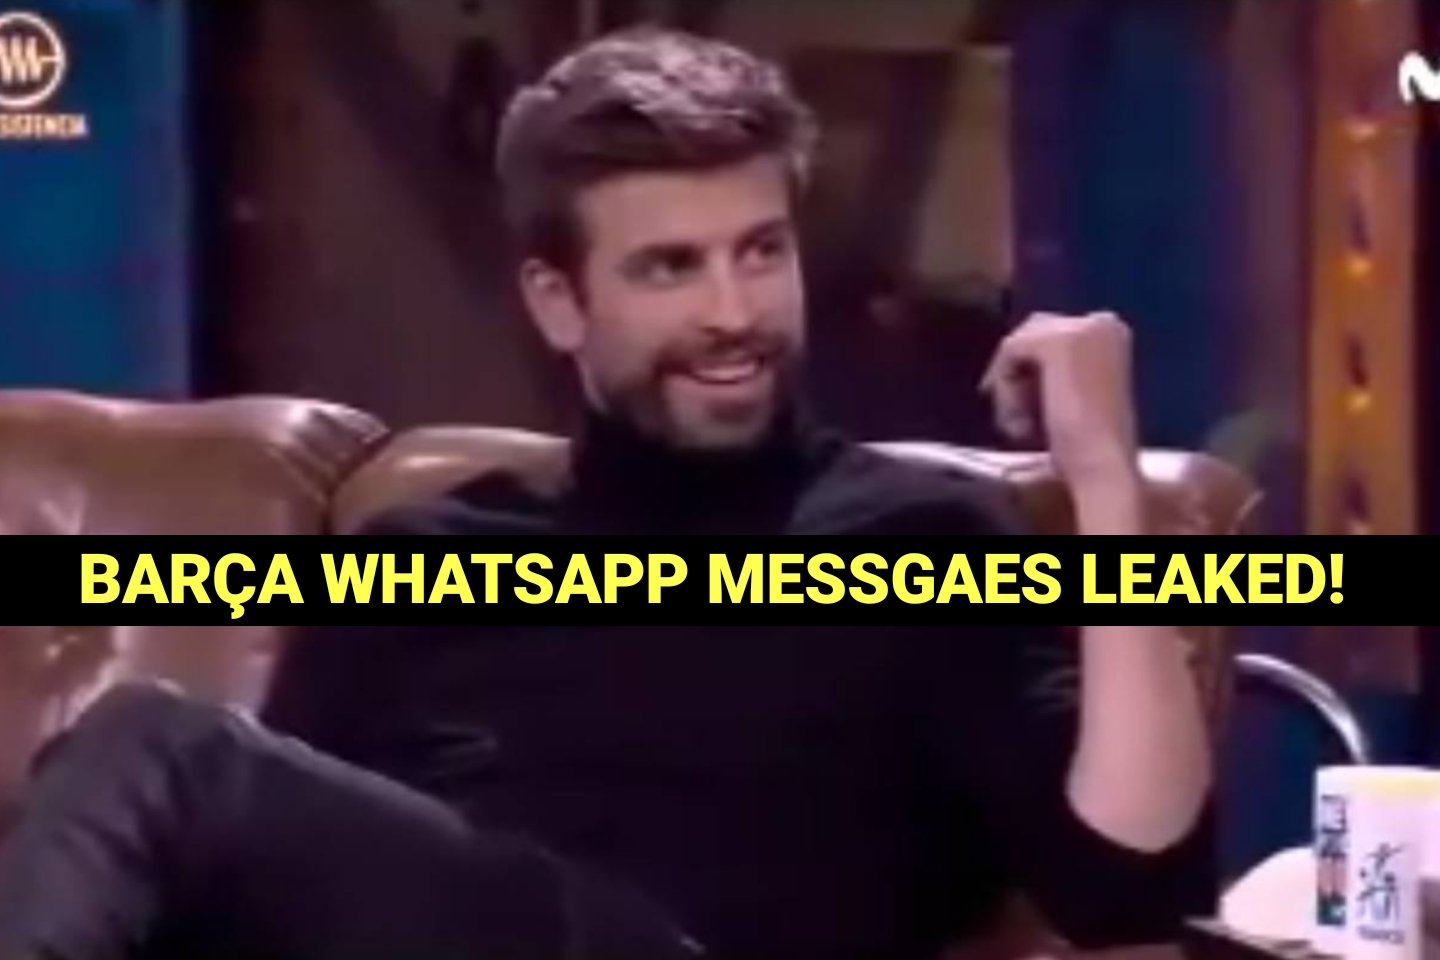 Gerard Pique discloses all the secrets of the Barcelona Player's Whatsapp Group.